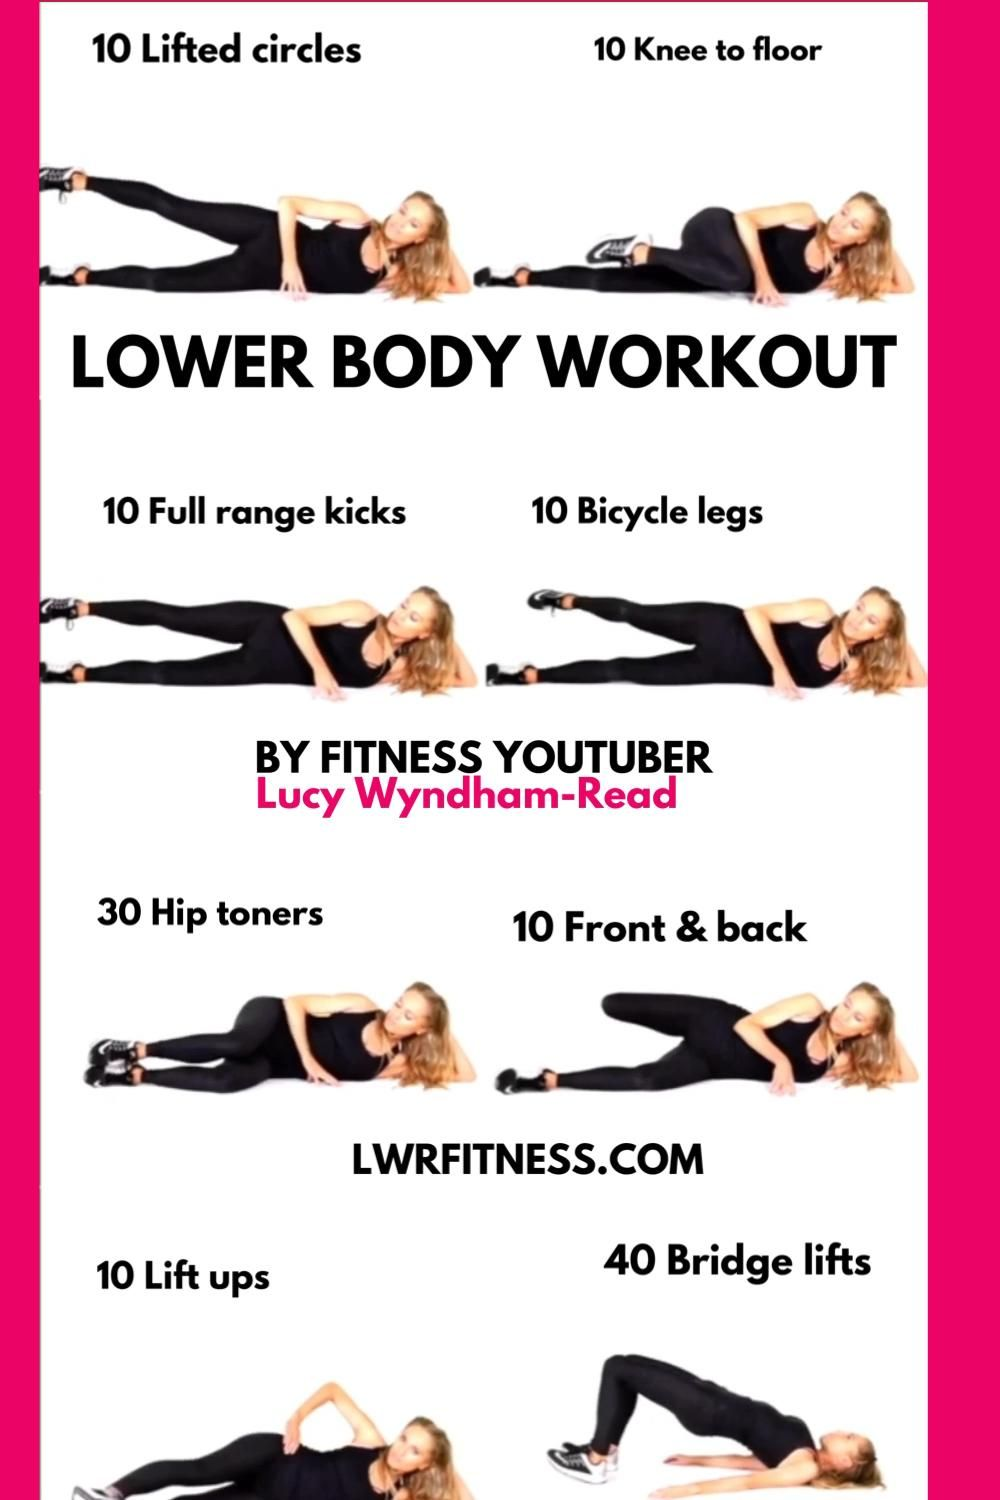 LOWER BODY WORKOUT AT HOME  - effective lower body exercises for legs and glutes at home.